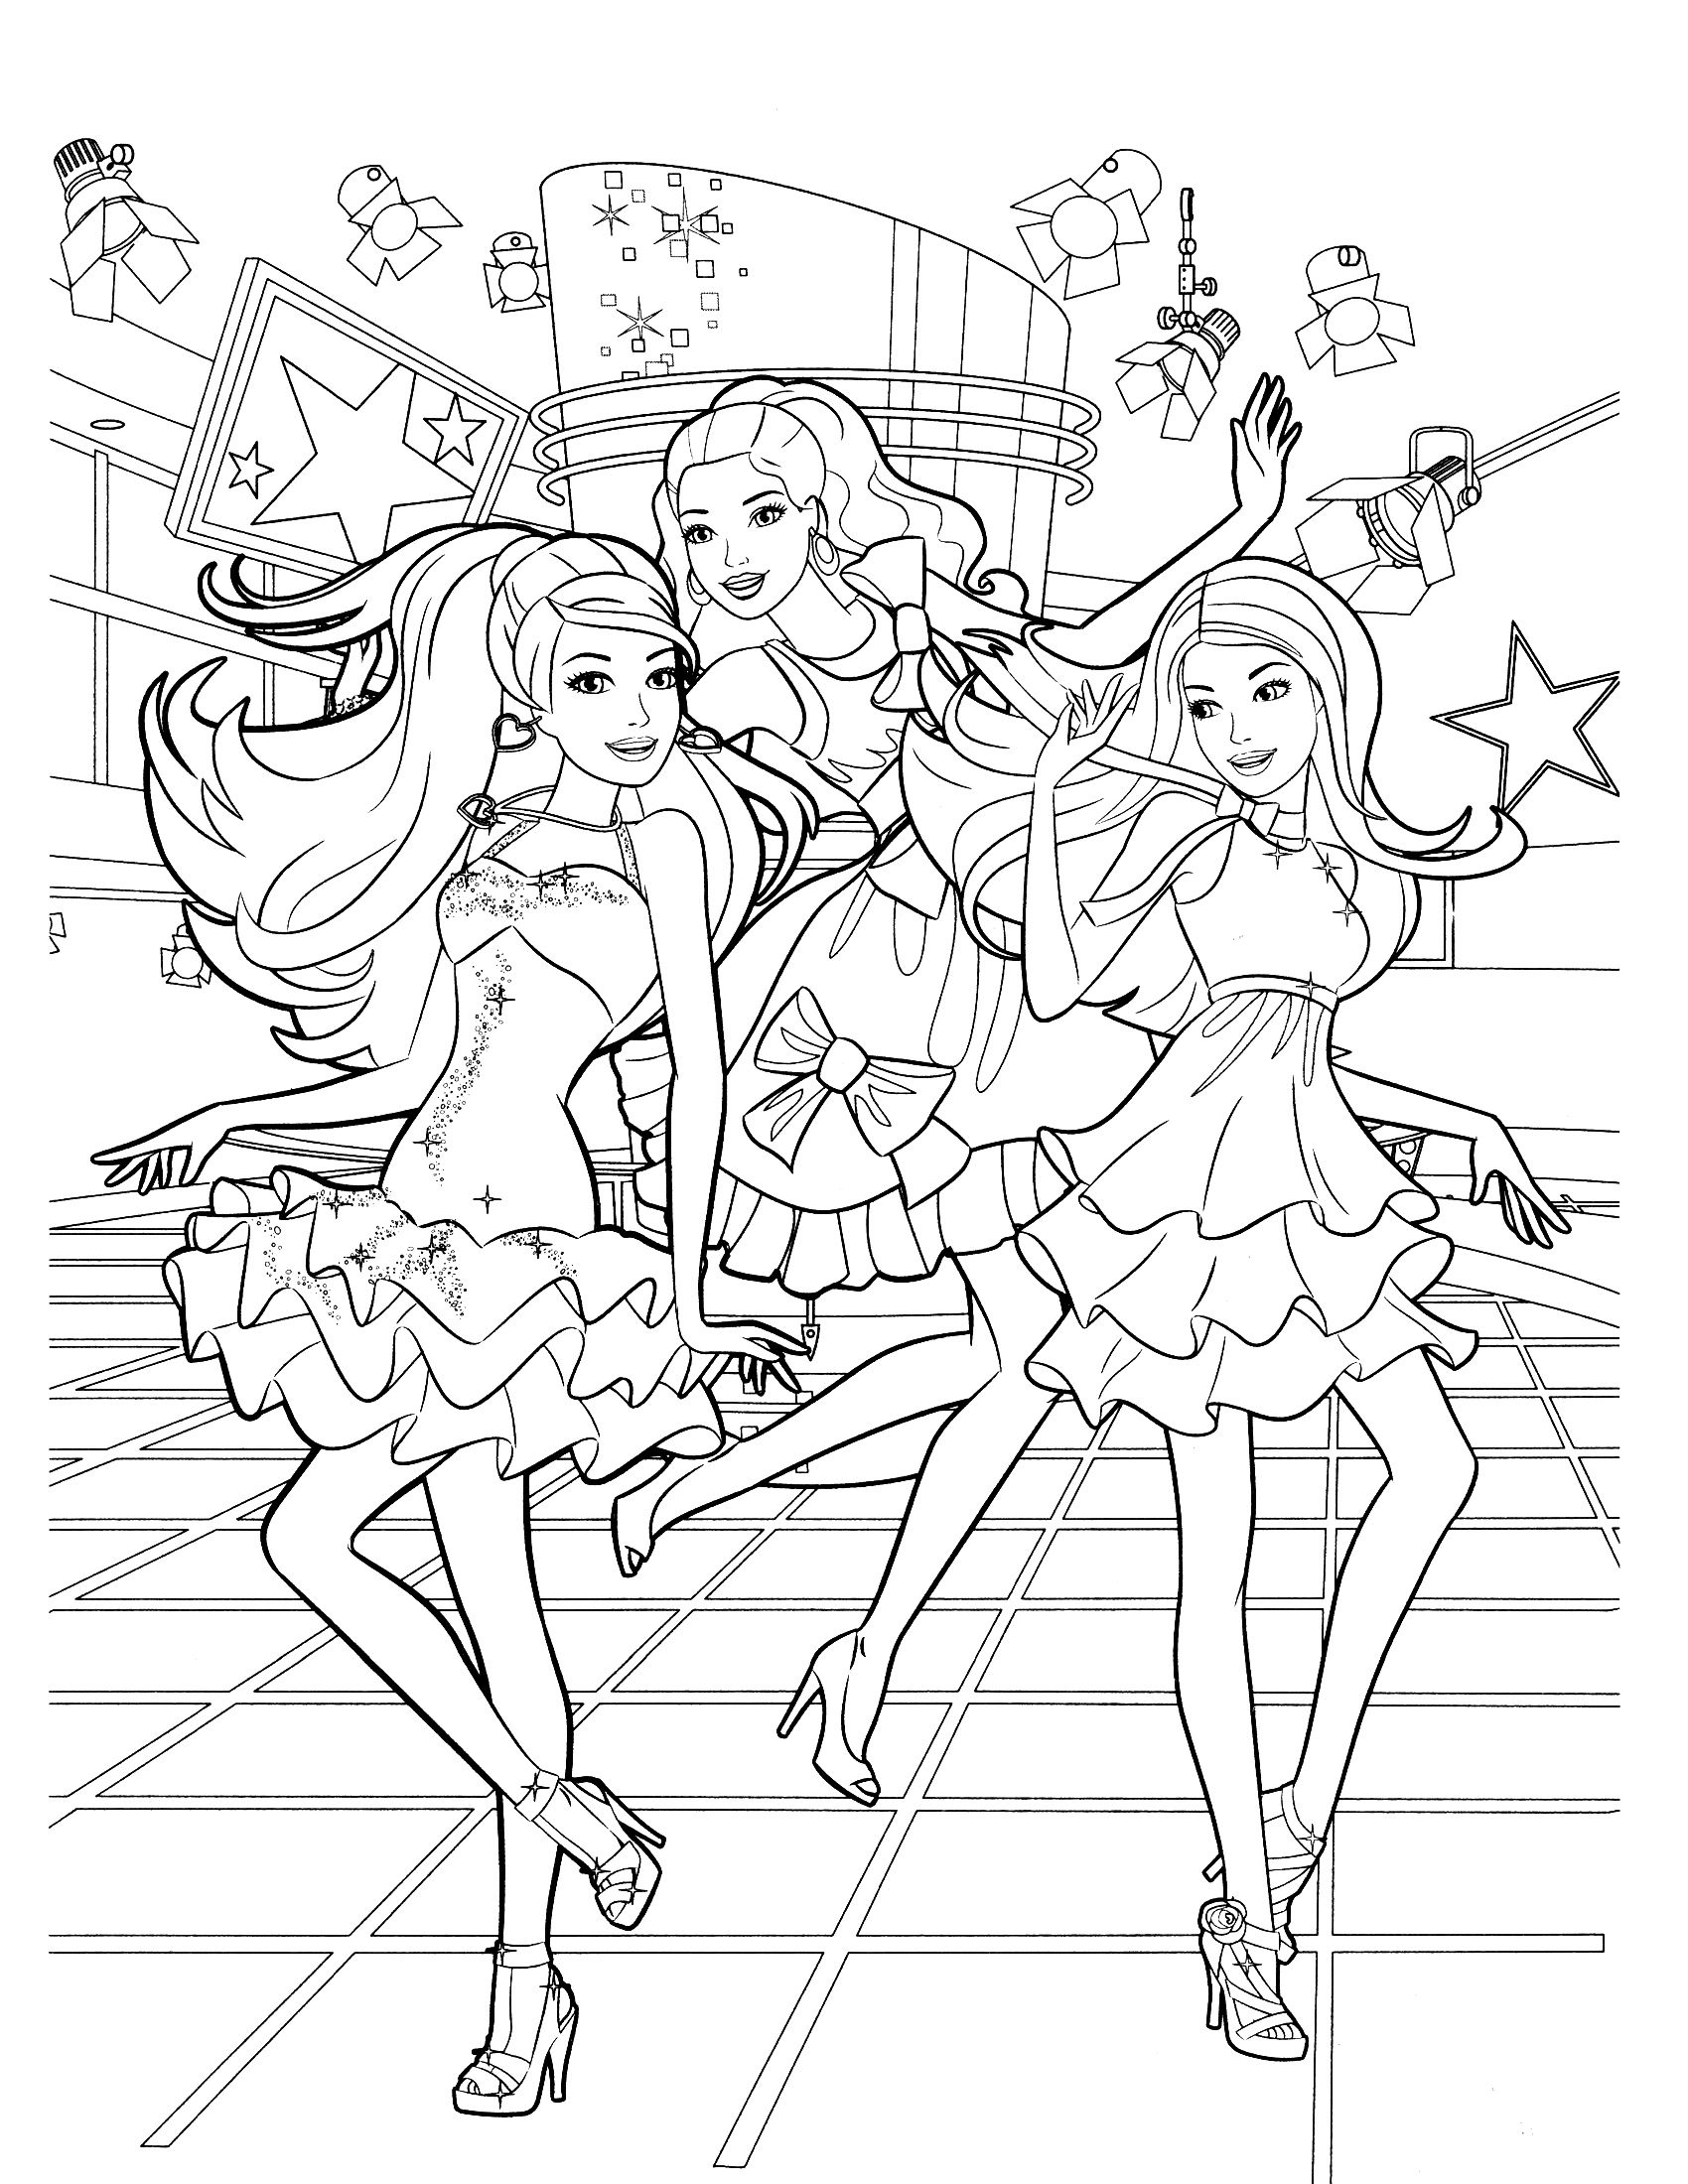 Operation Game Coloring Pages